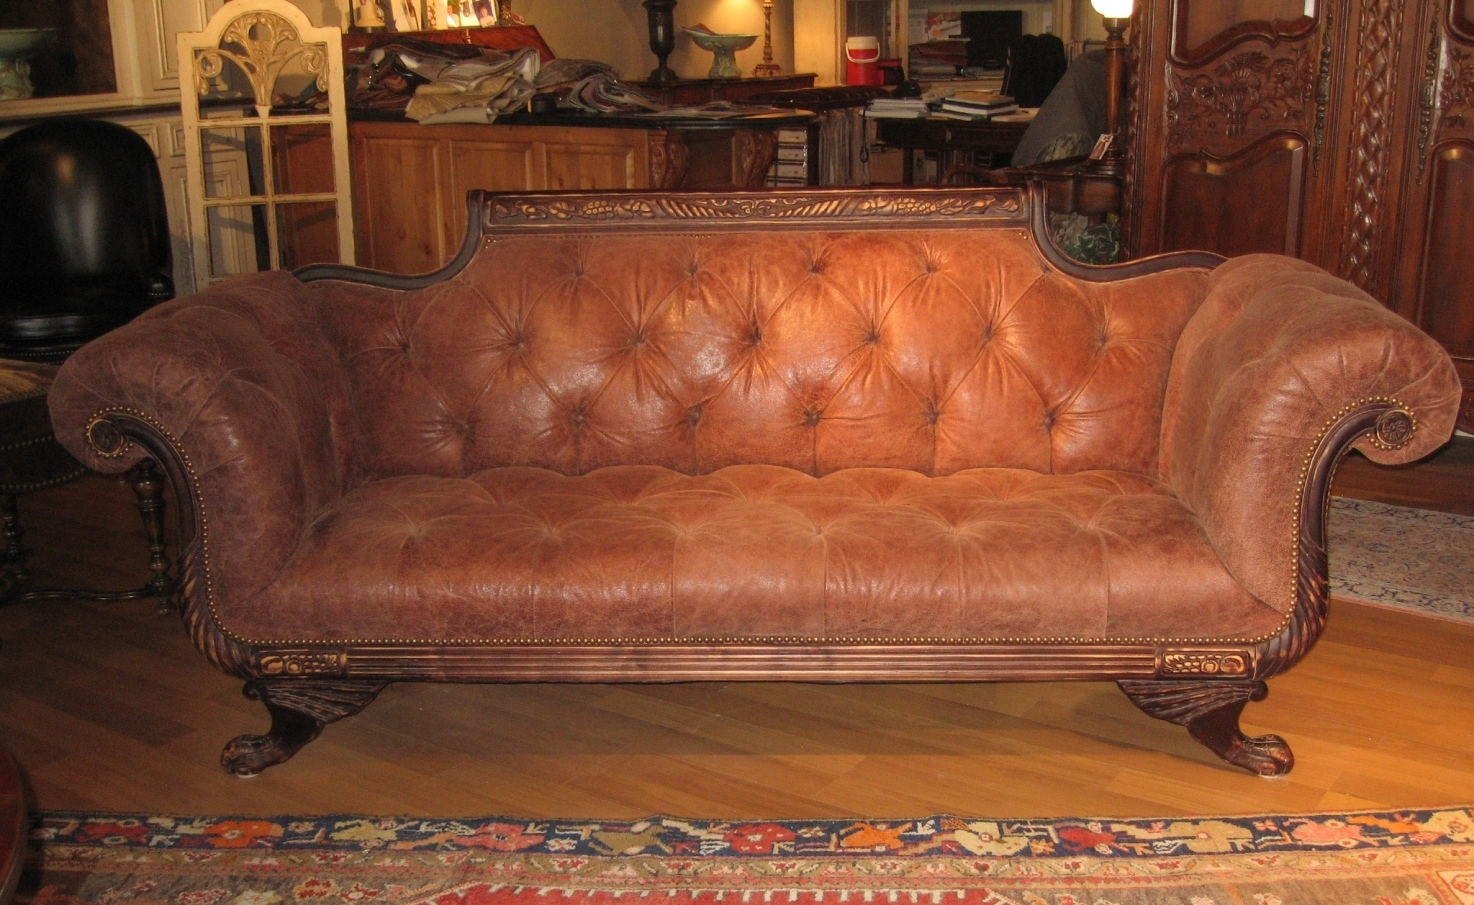 Attractive SOFA, COUCH U0026 LOVESEAT Duncan Phyfe Sofa Tufted High Quality Leather